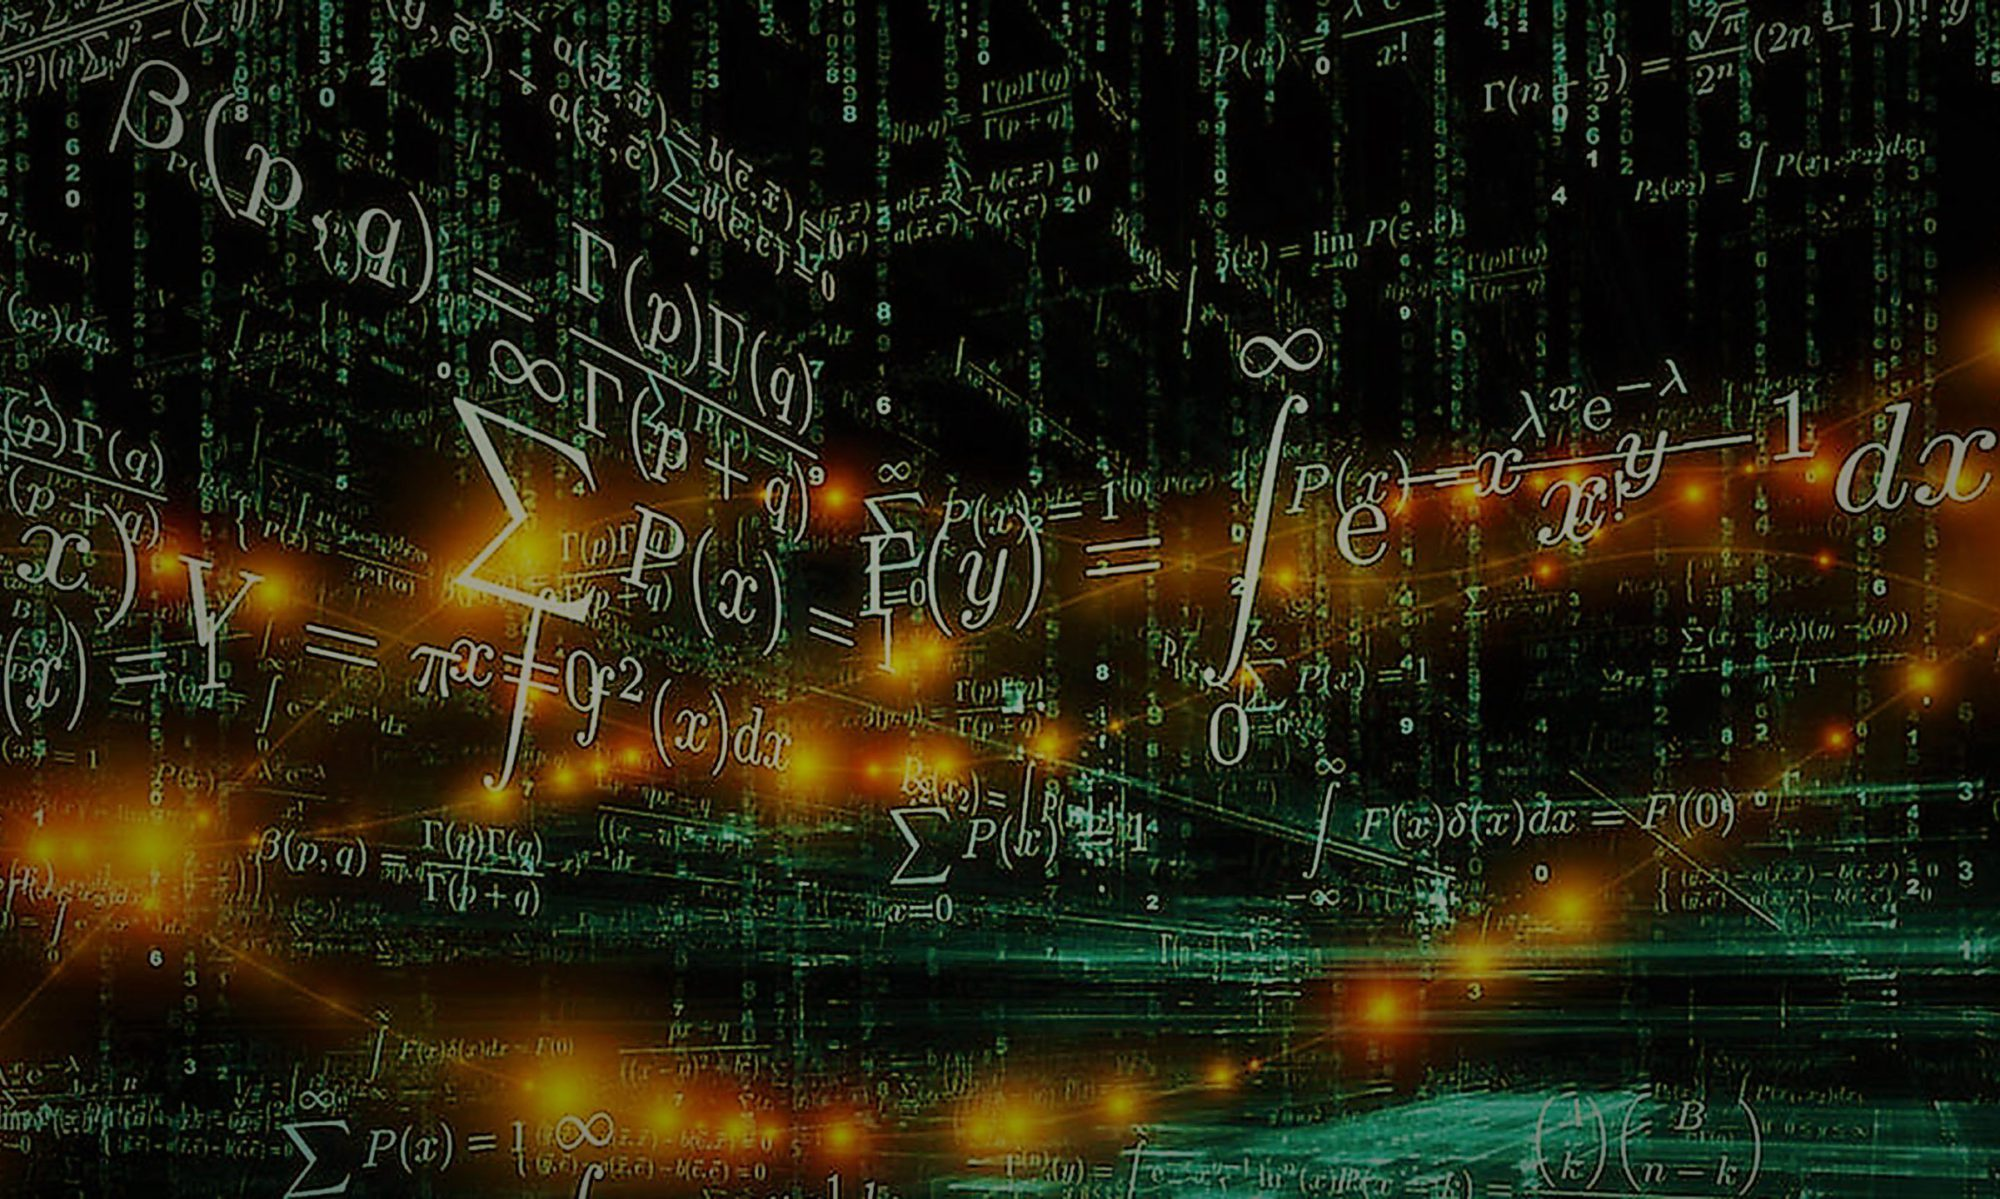 International Conference on Emerging Trends in Mathematical Sciences & Computing (IEMSC-21)